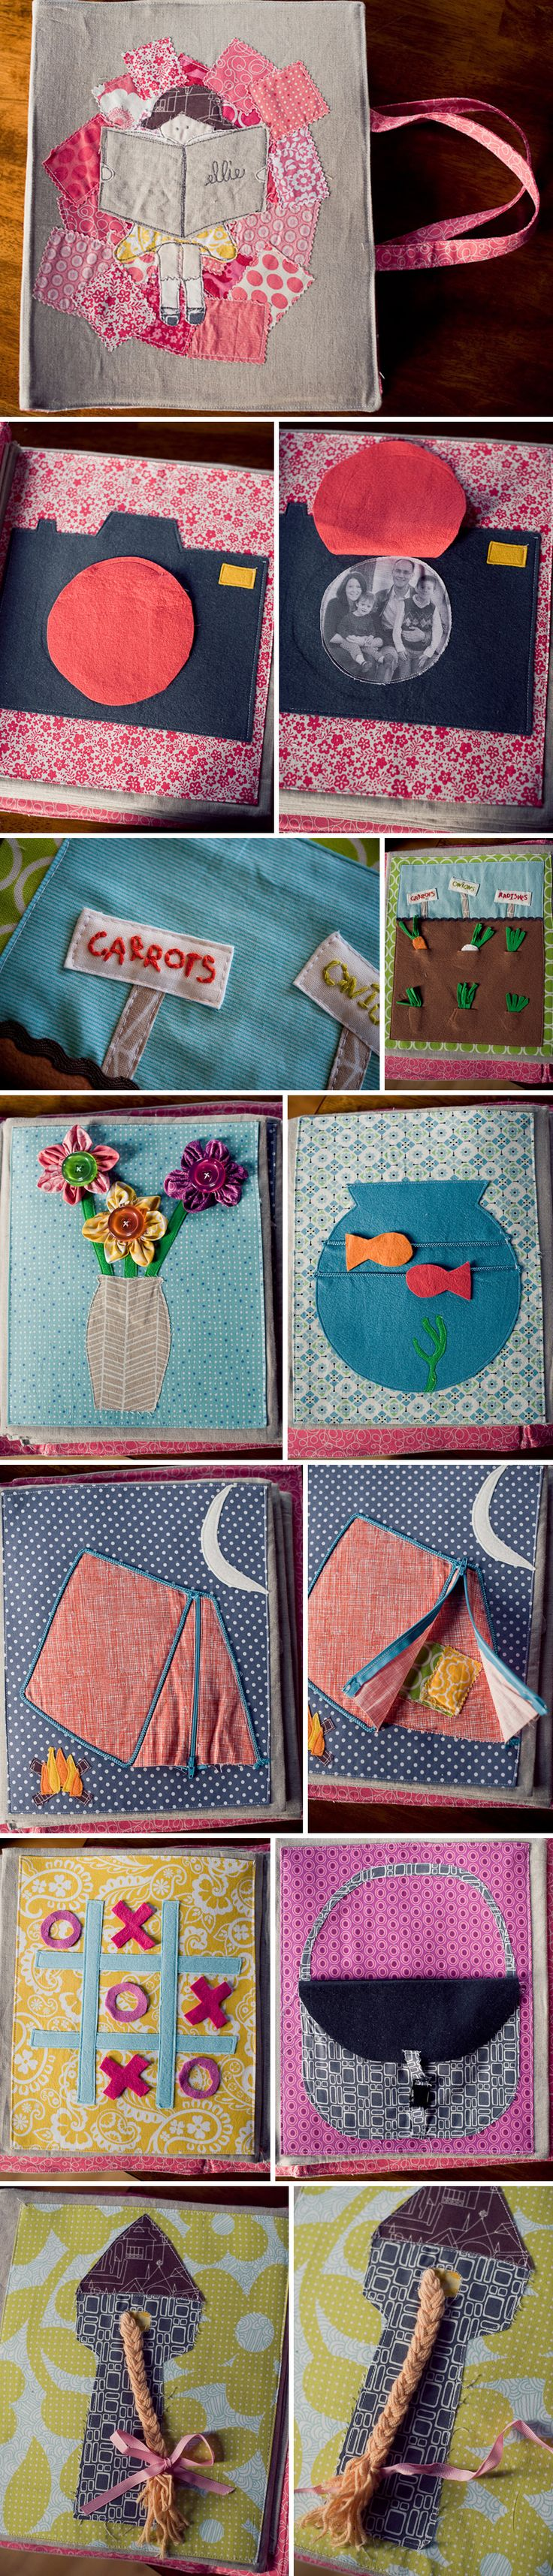 I like the fish page. I want to have some sort of family picture page (I've seen cameras, peekaboo hands, and houses/doors.) but I'd make it a clear pocket so you can switch out the picture.